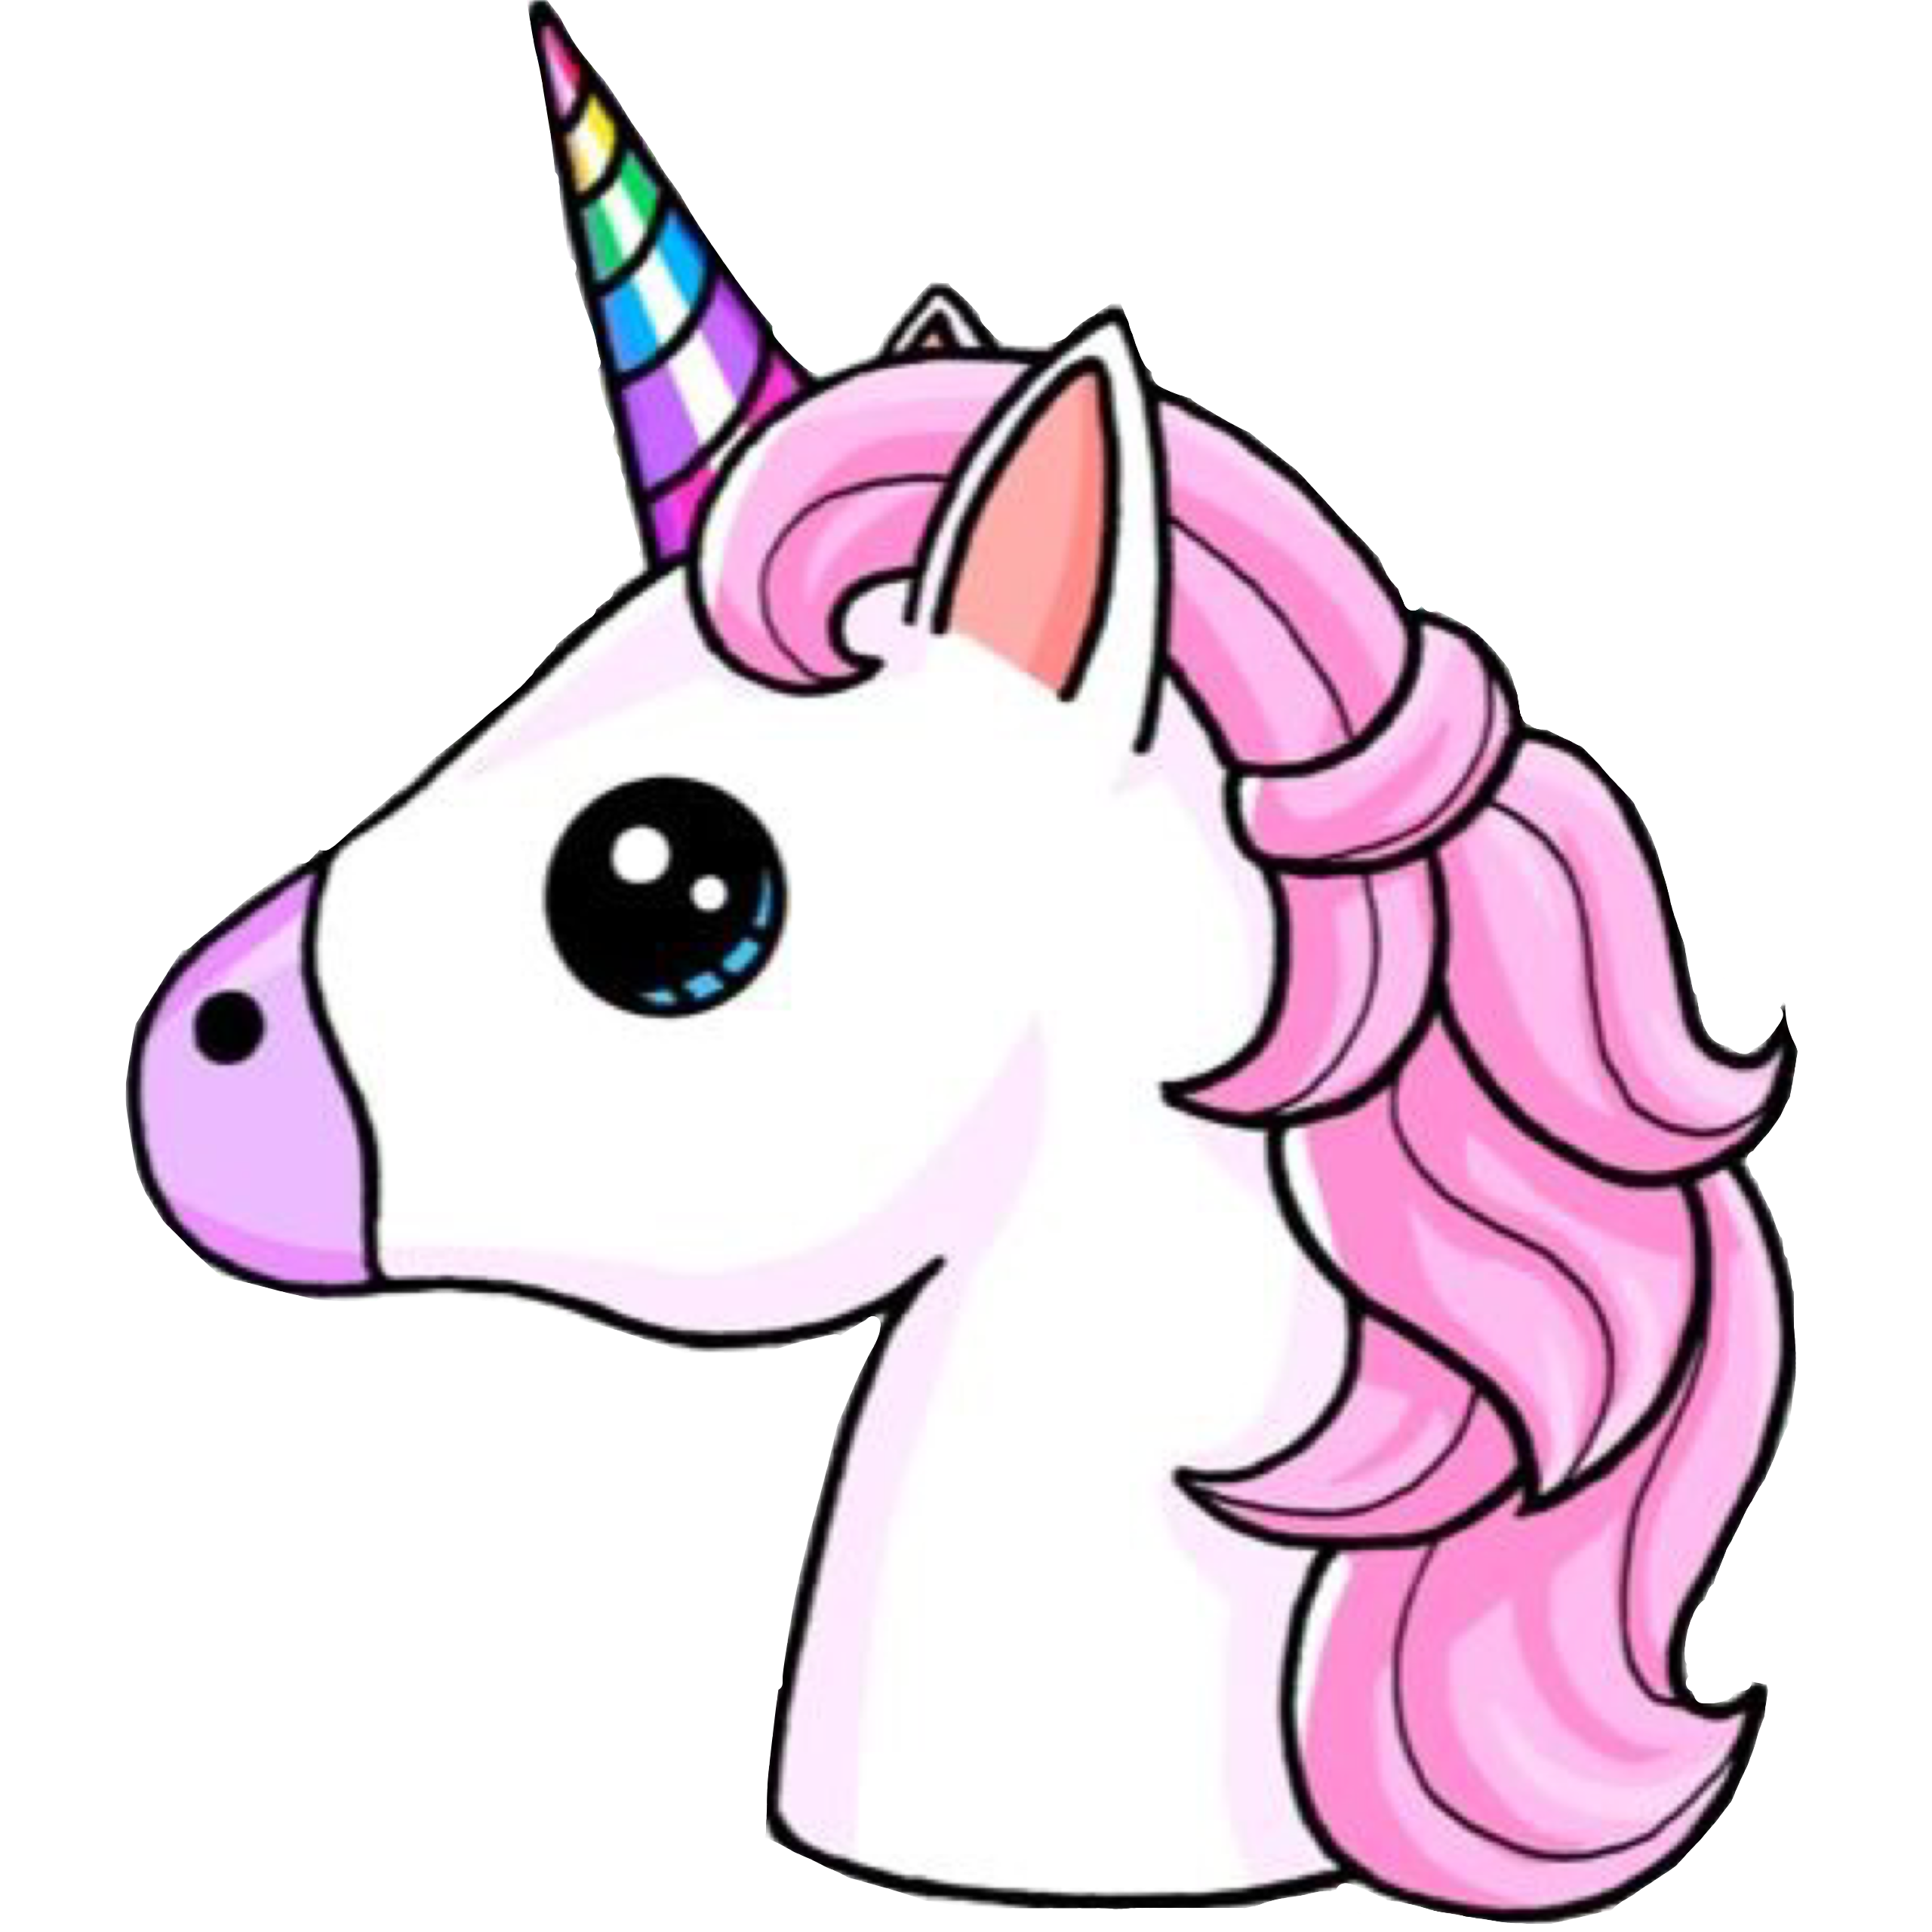 Wallpaper Desktop Unicorn Womensday Drawing Emoji PNG Image